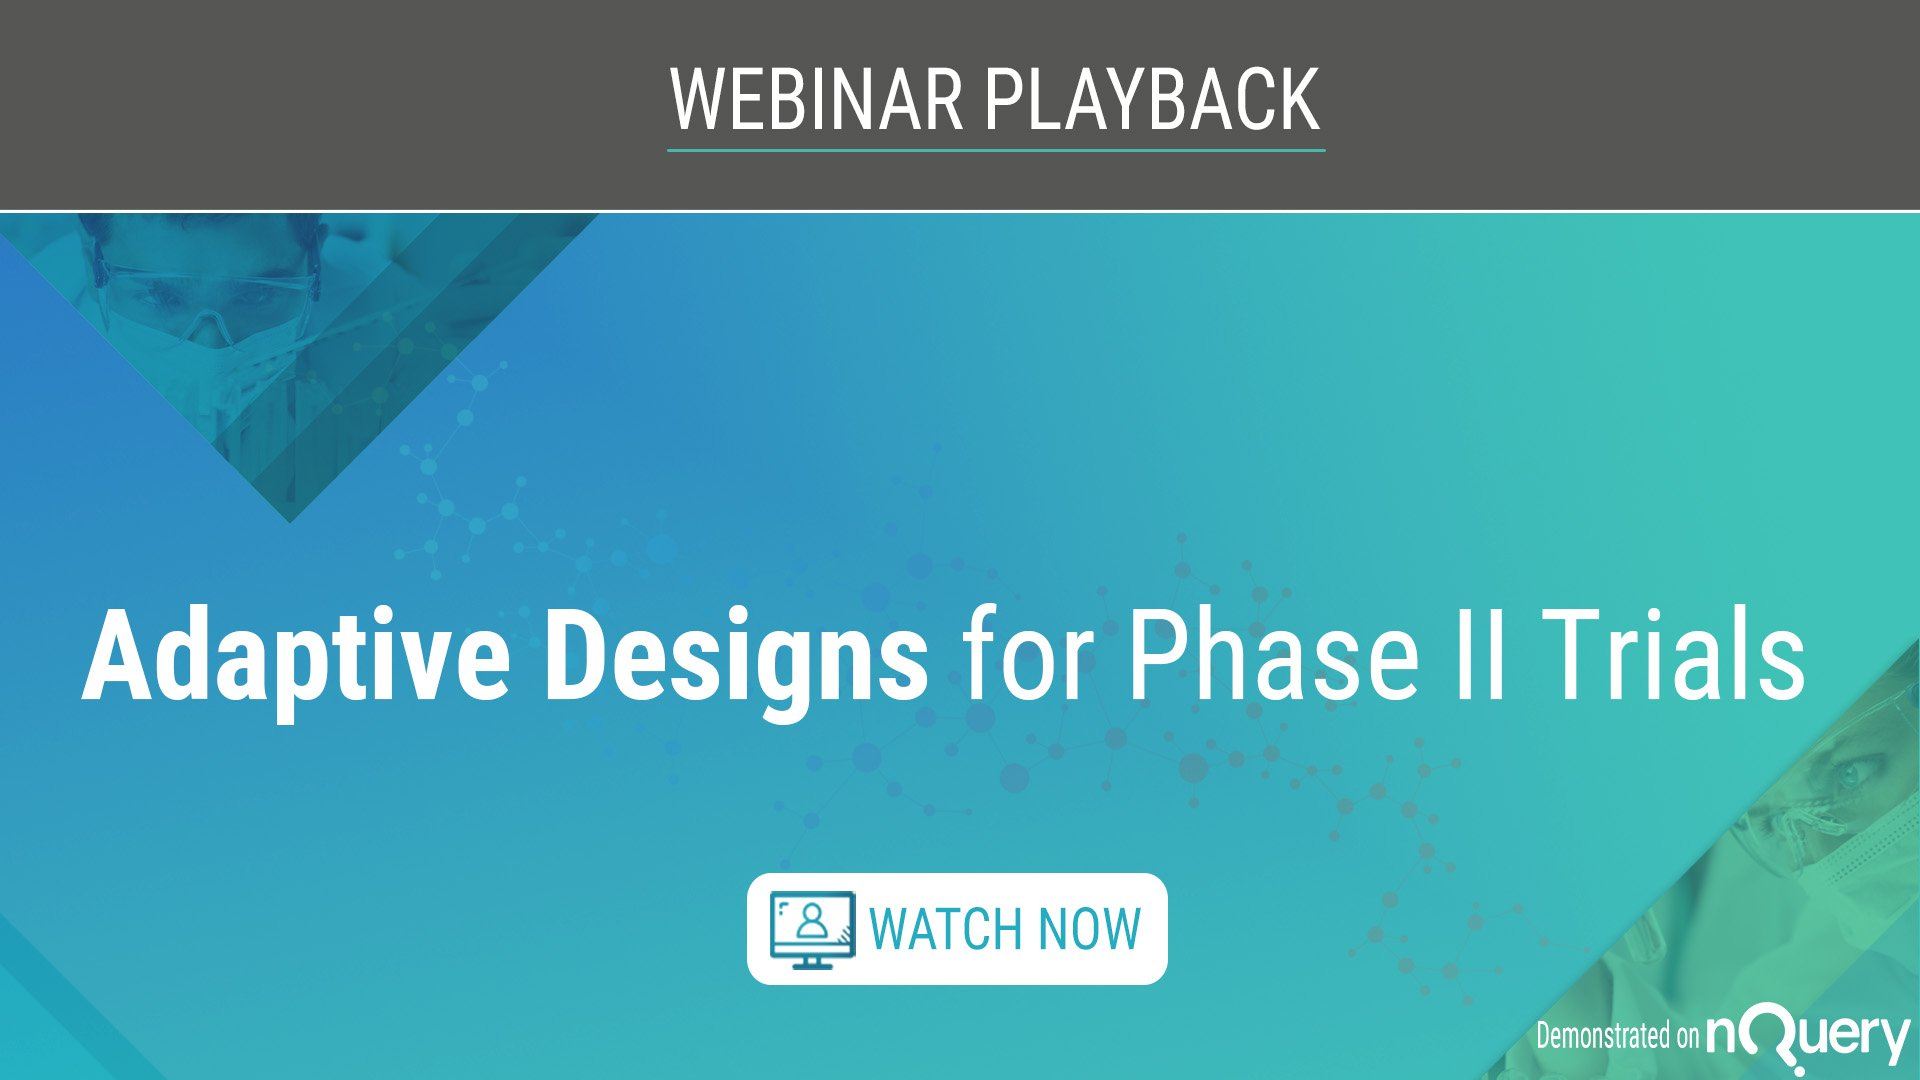 Adaptive-designs-for-phase-II-trials